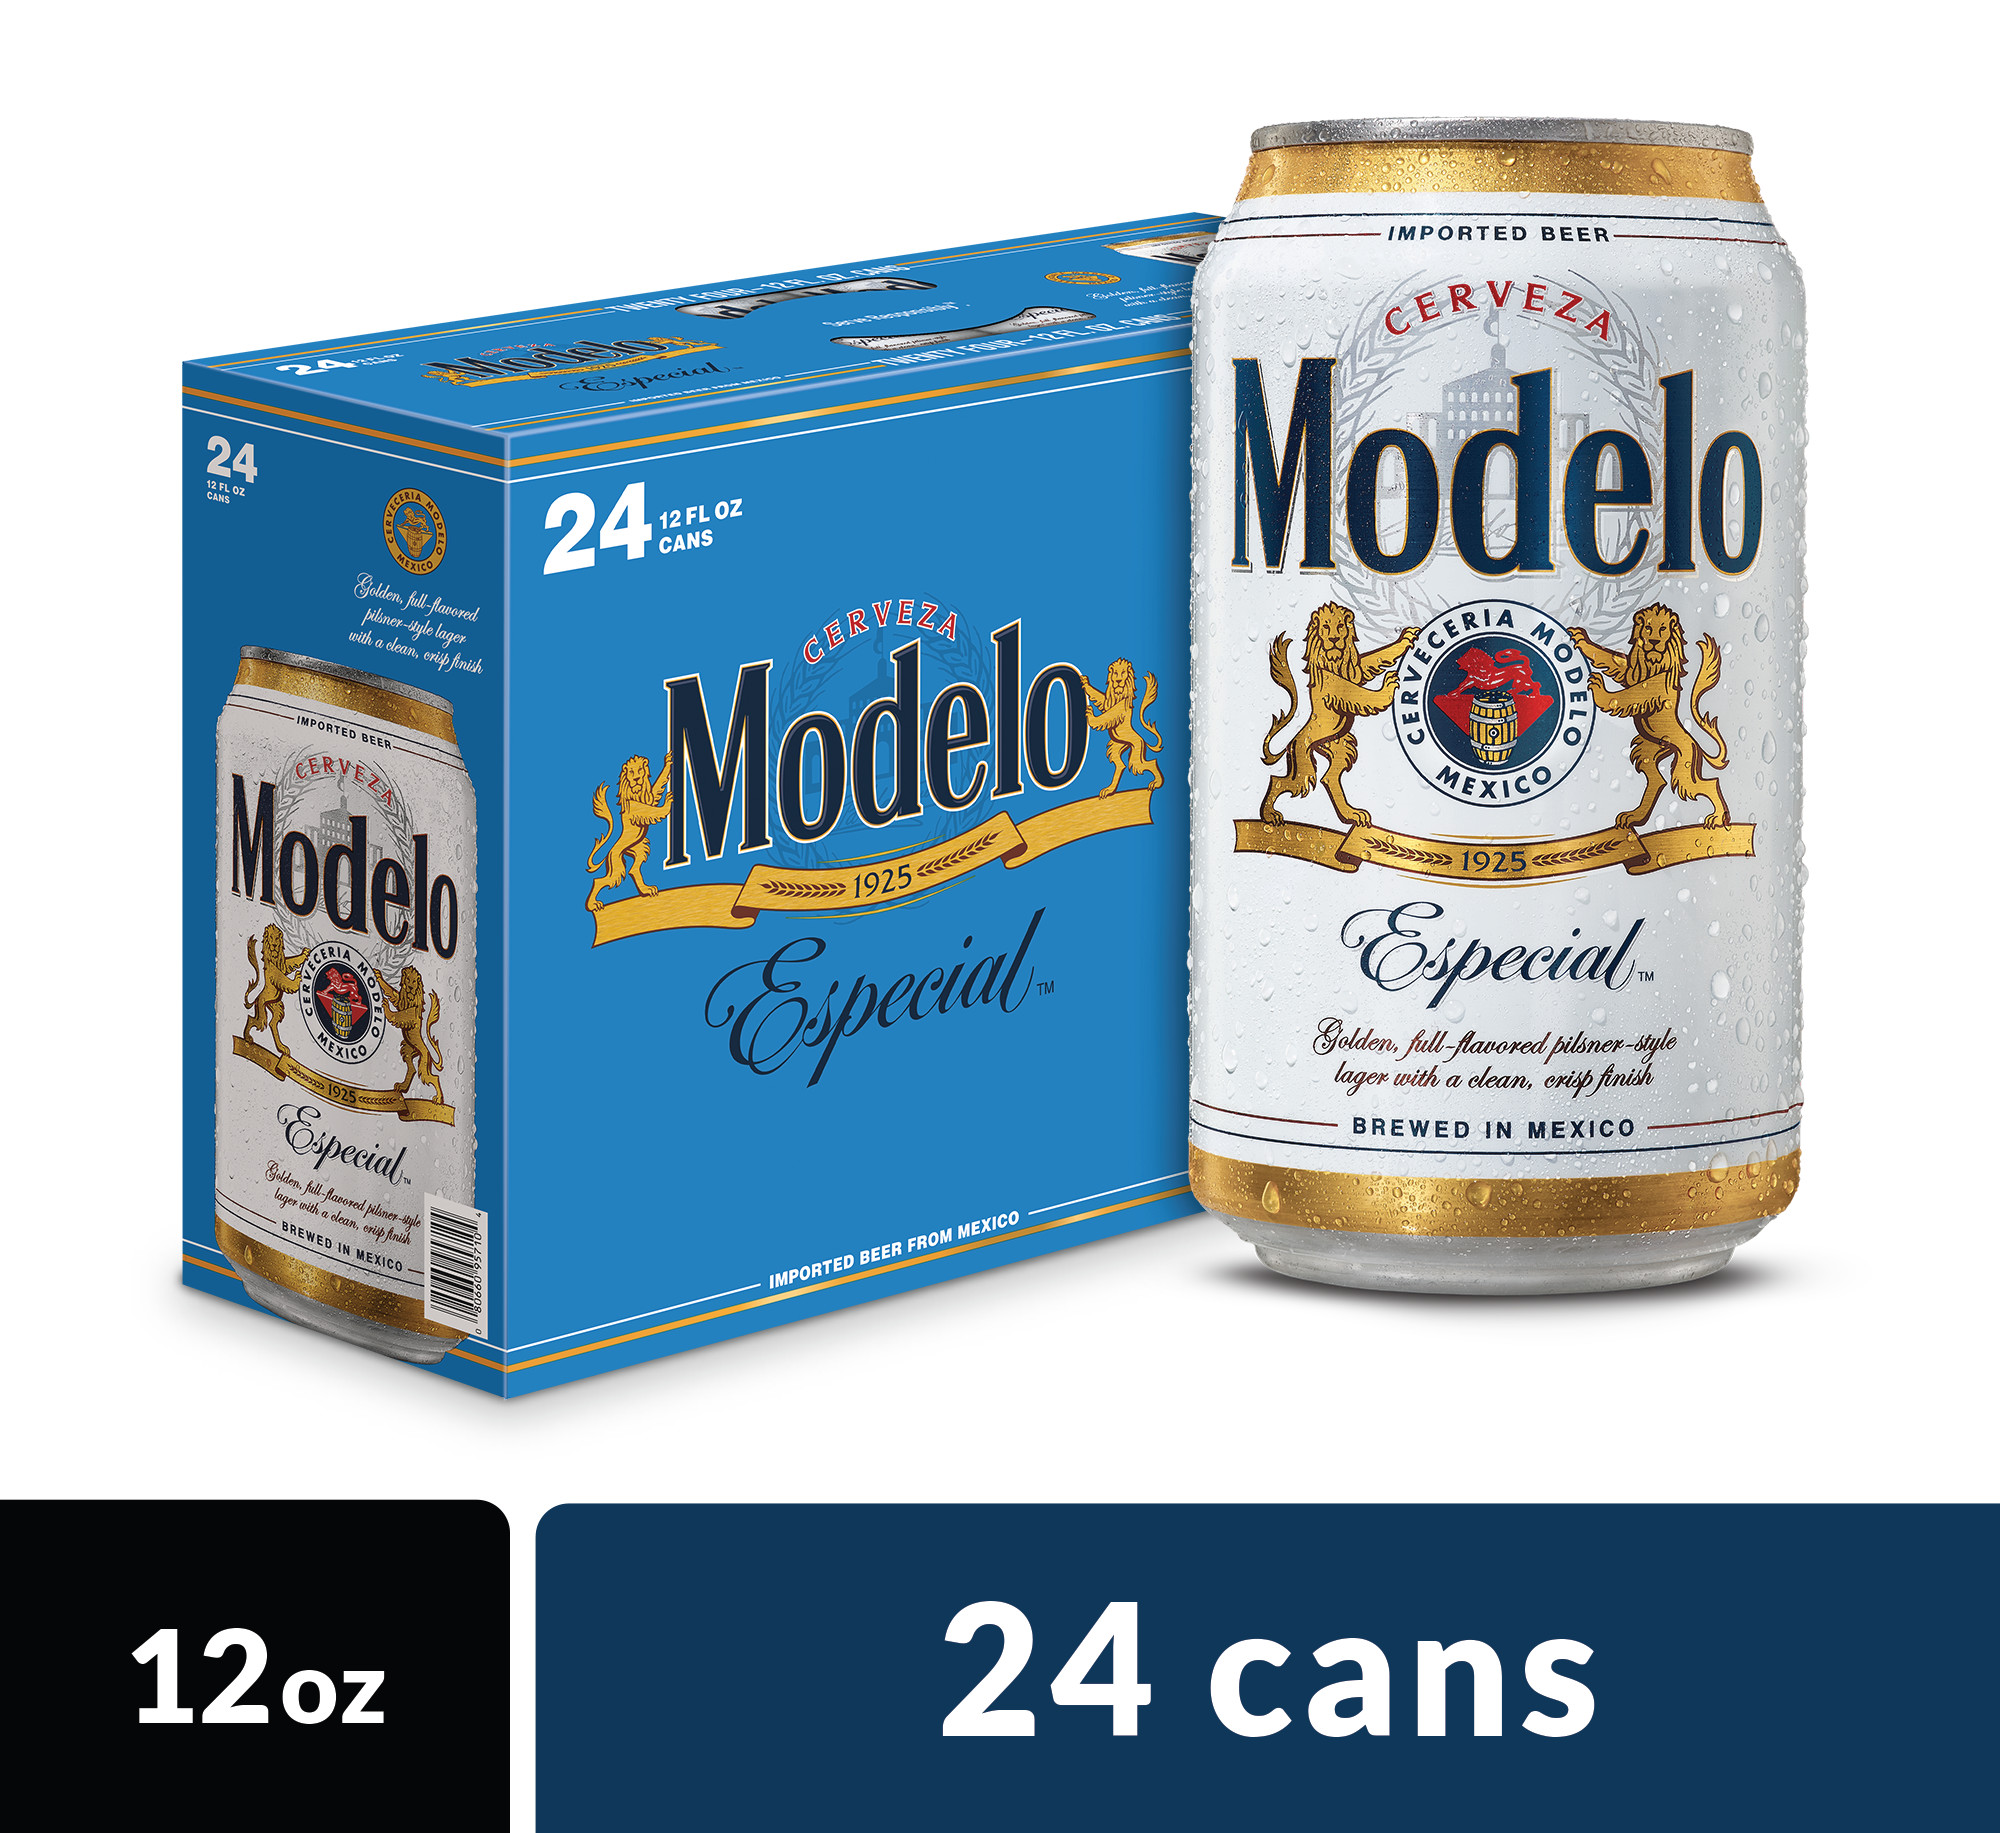 Modelo Especial Mexican Import Beer, 24 pk 12 fl oz Cans, 4.4% ABV